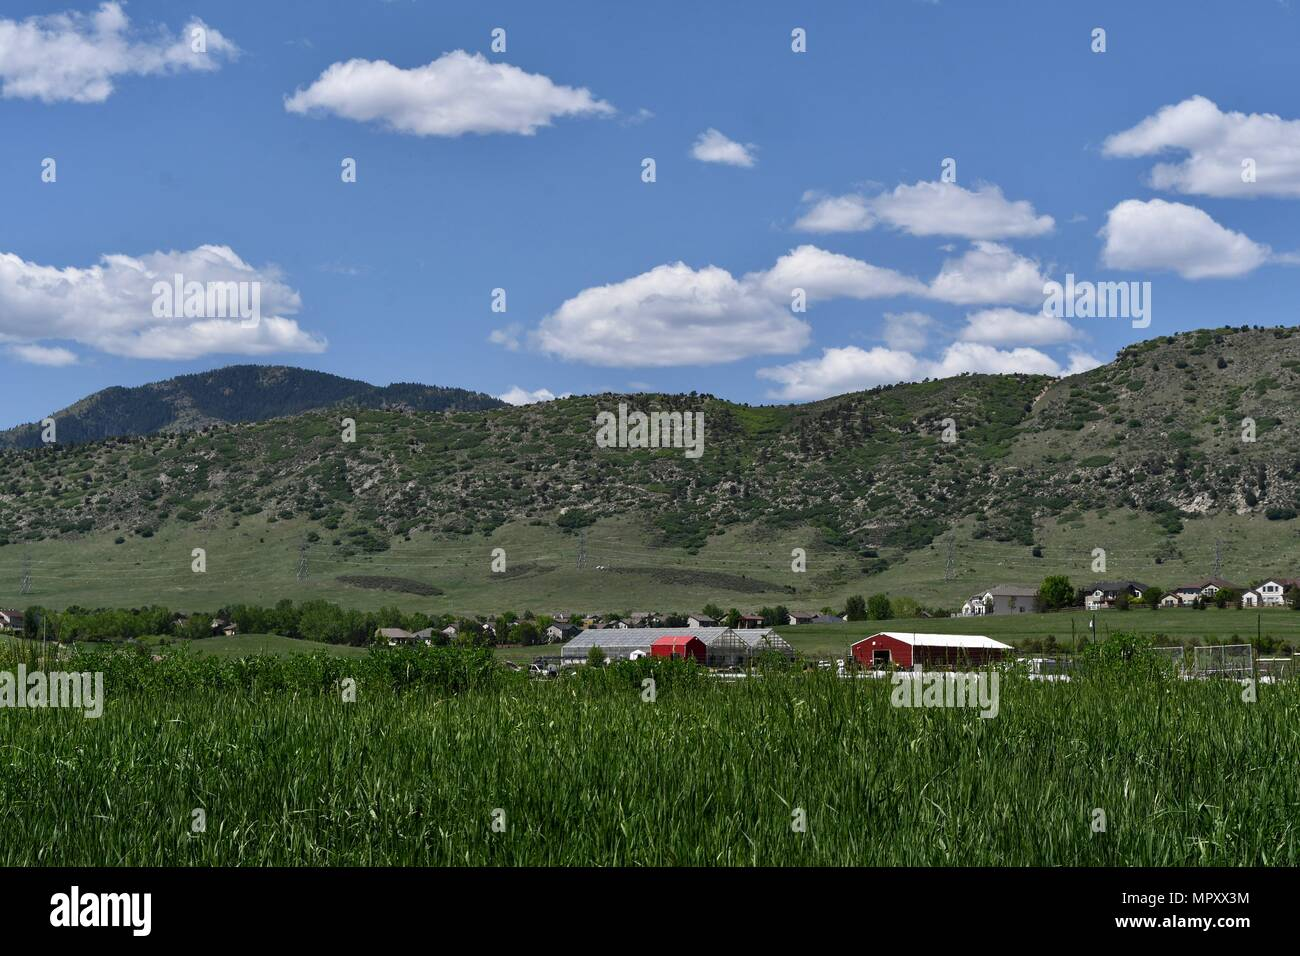 Rural community seen from Denver Botanic Gardens at  Chatfield Farms - Stock Image